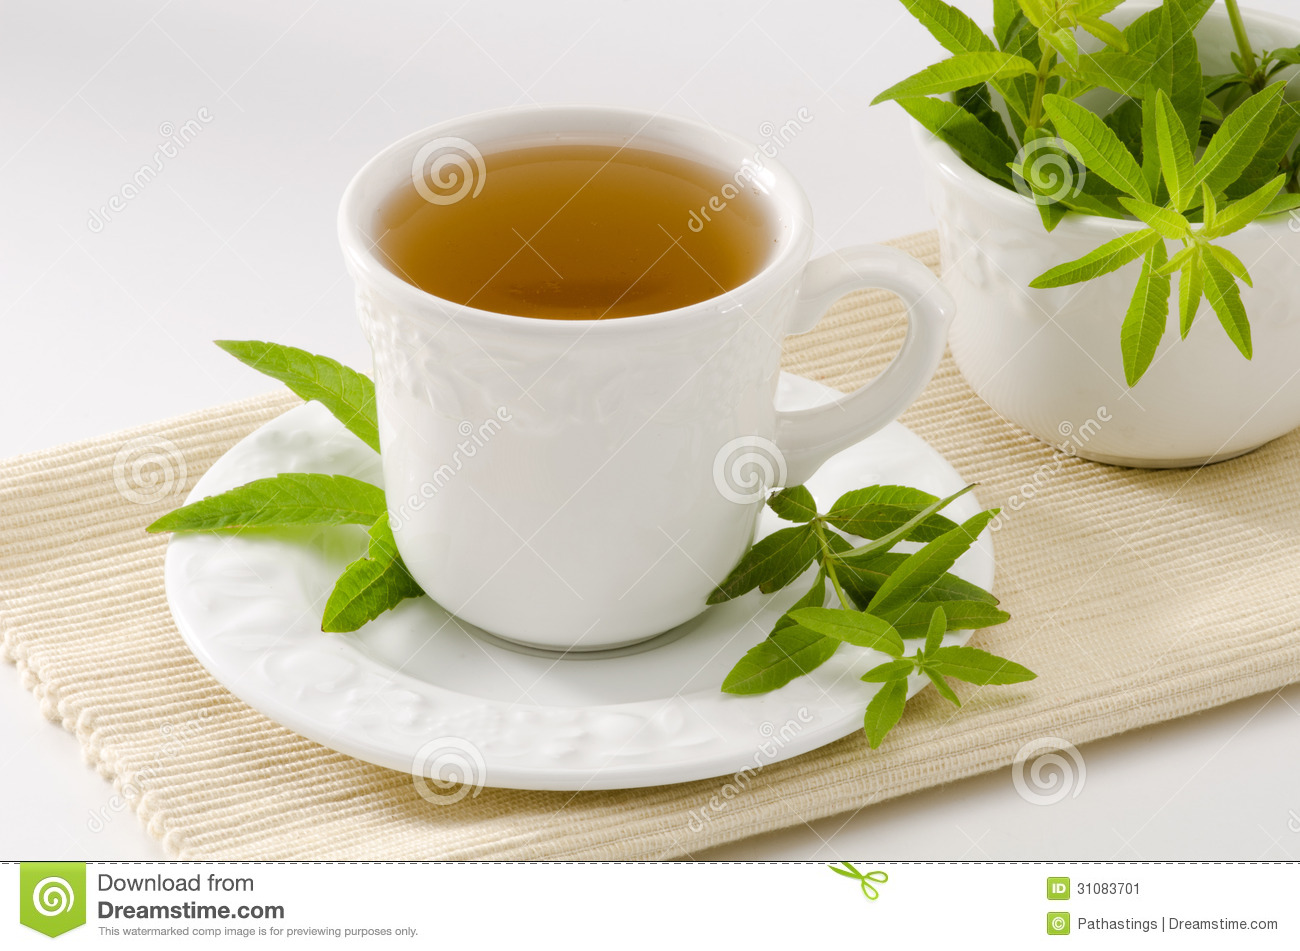 Lemon verbena Herbal Tea in a cup. Aloysia citriodora. Naturopathy ...